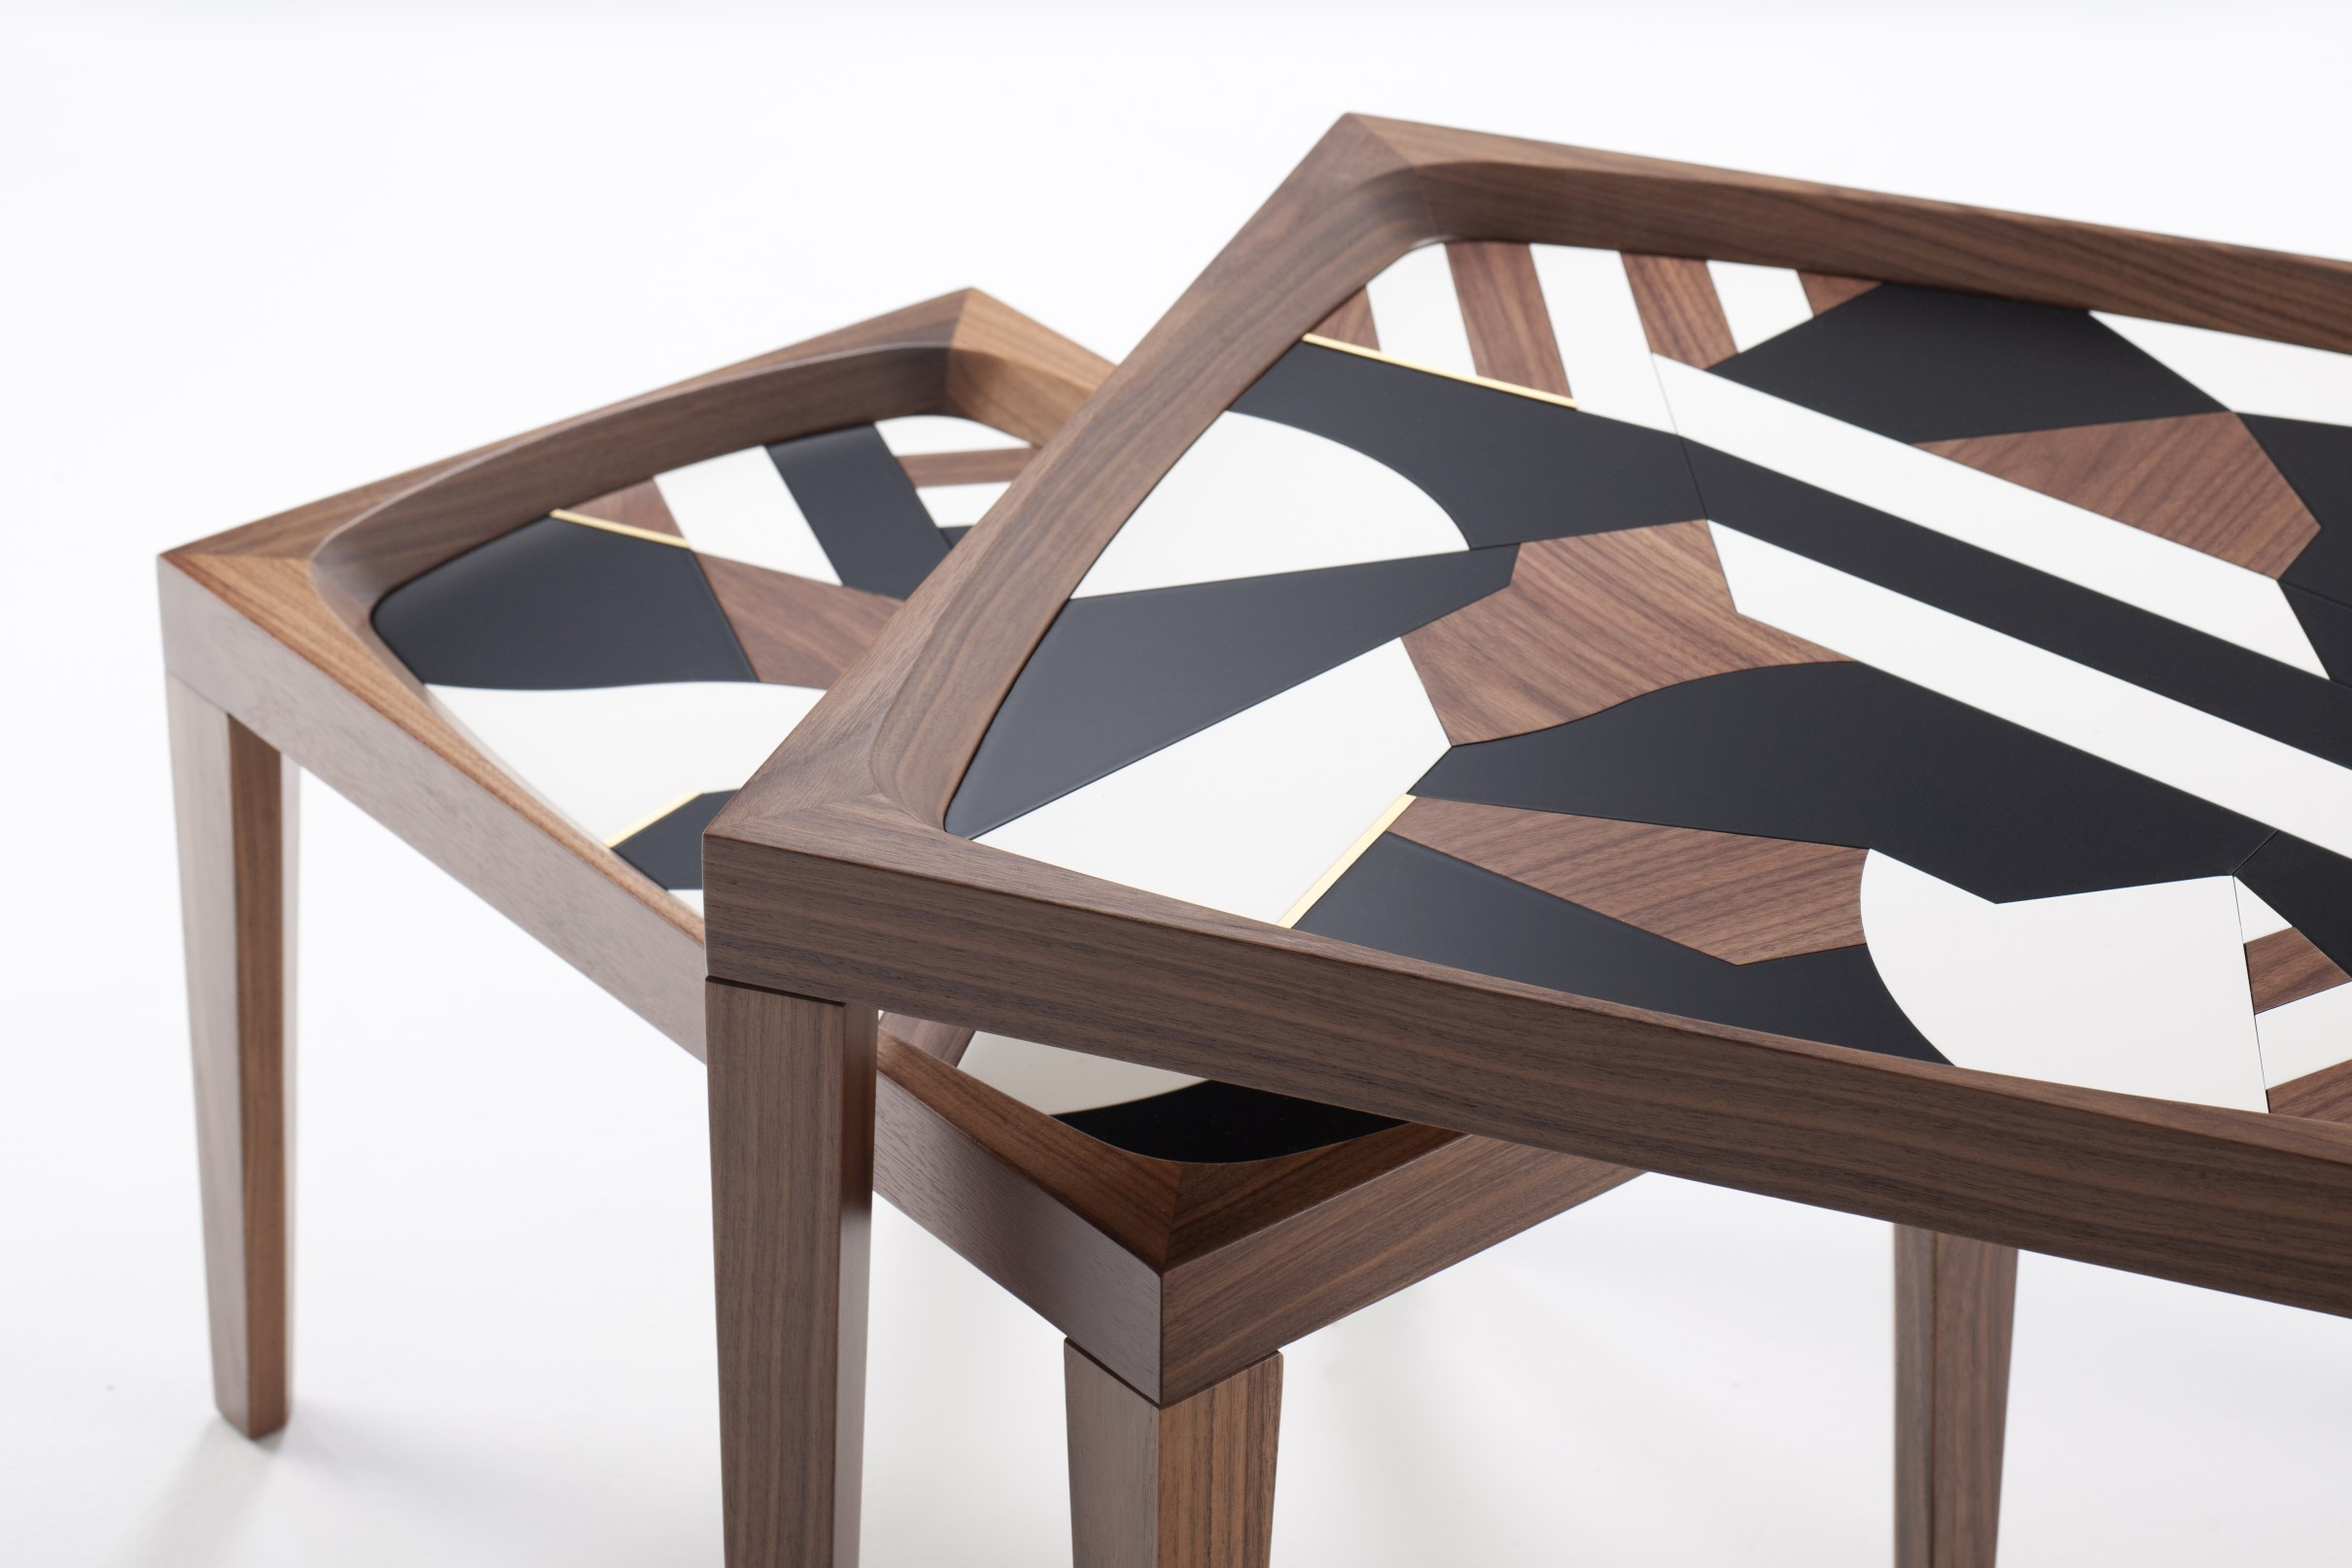 Image of Goodwood side table in two sizes